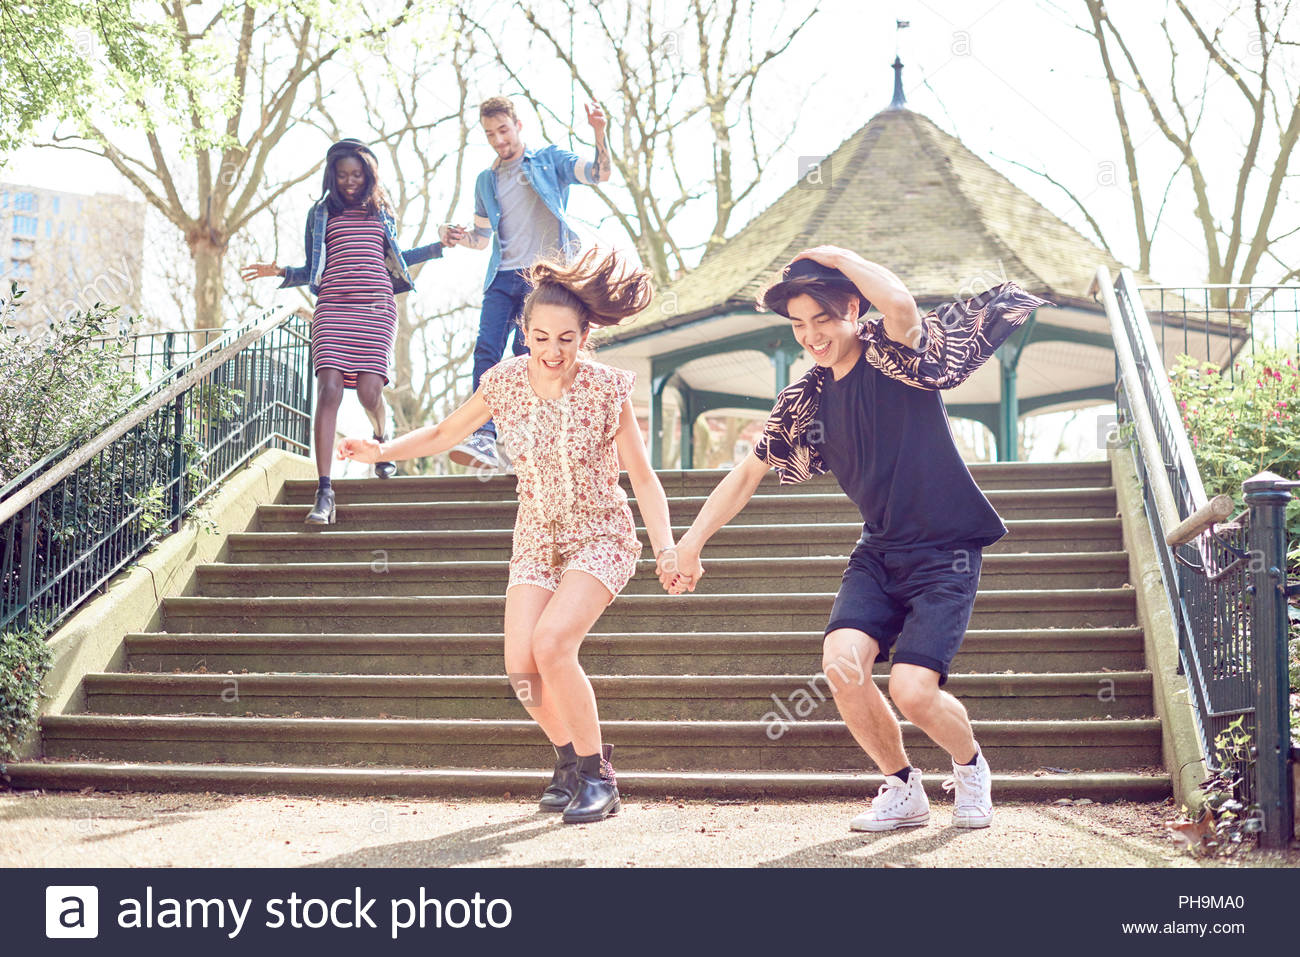 Teenage friends jumping down steps at park - Stock Image